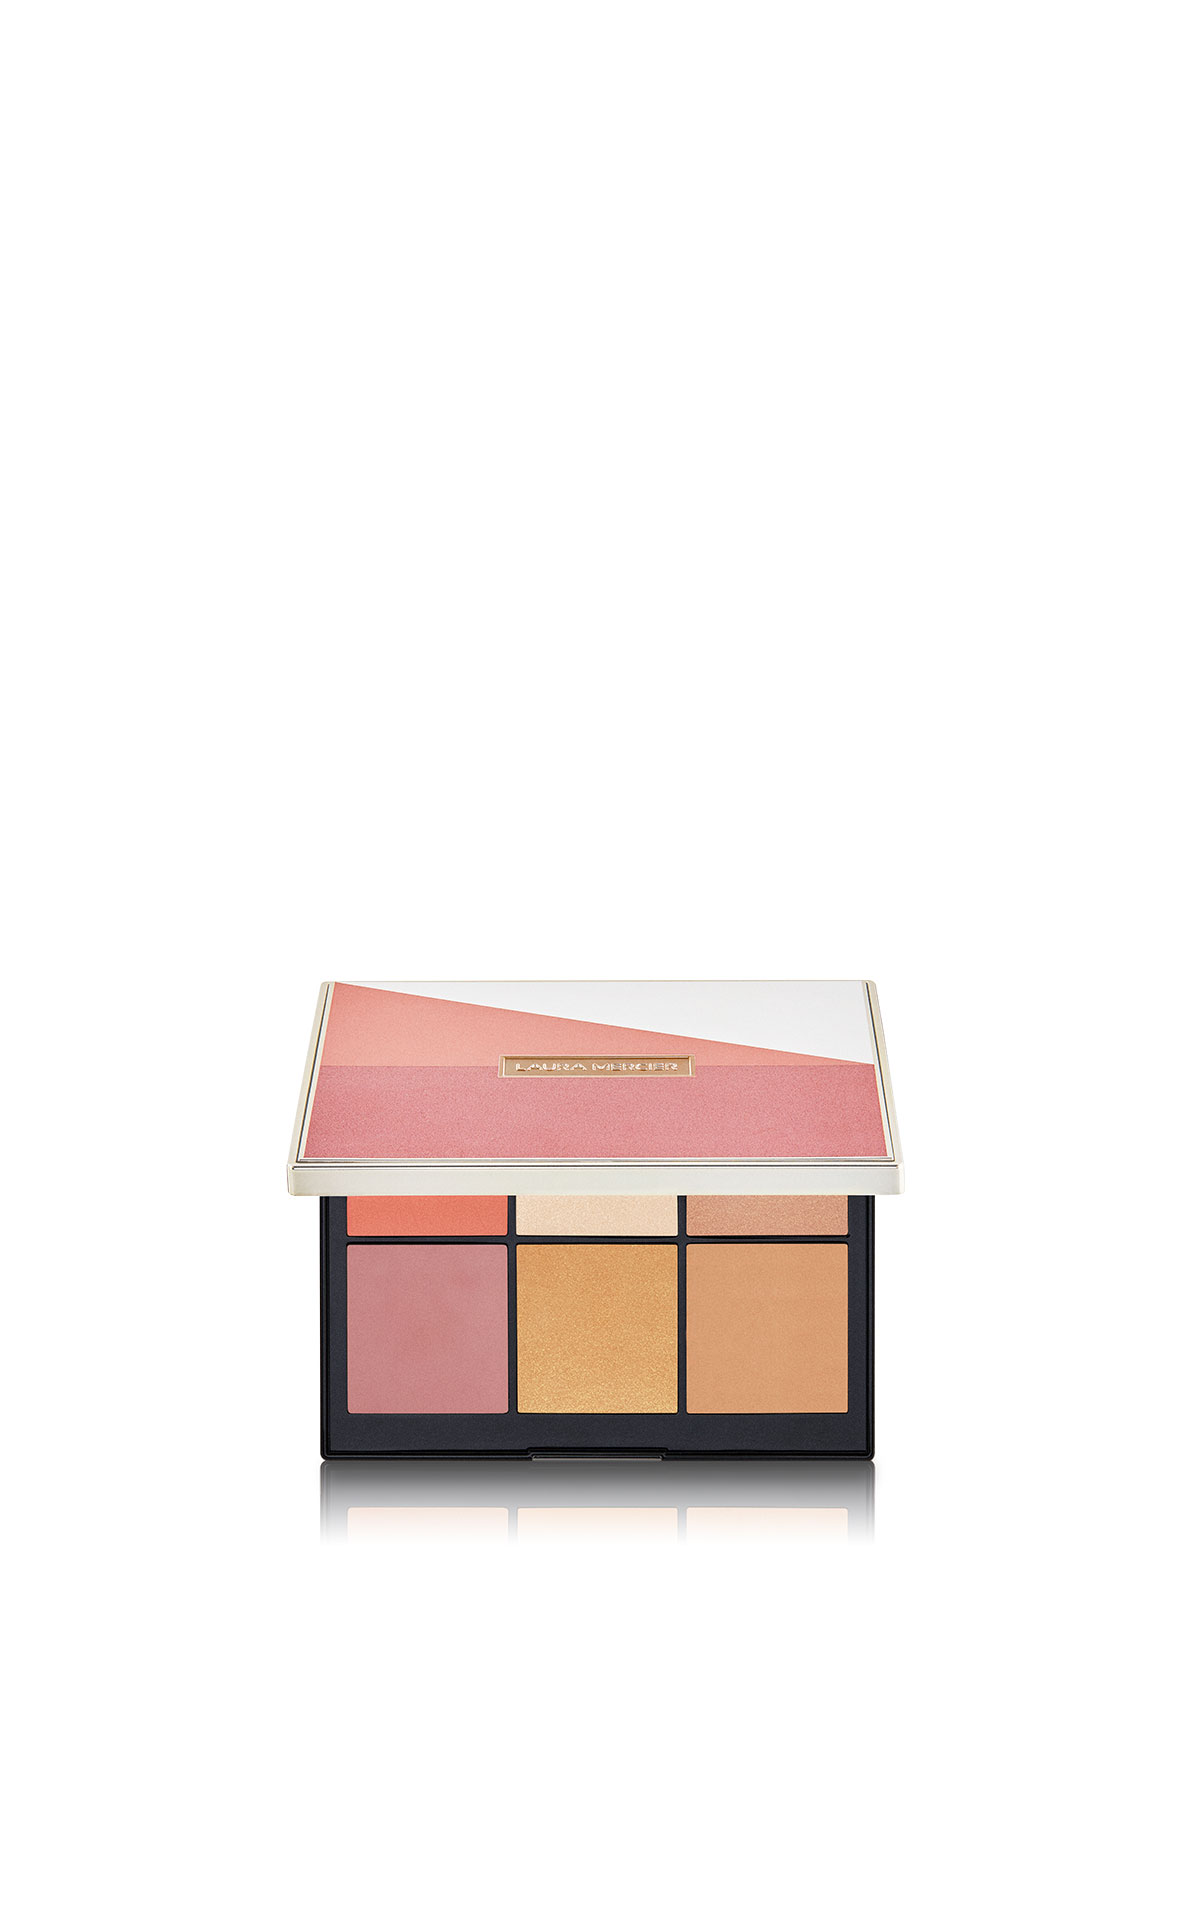 Beauté Prestige International Laura Mercier Tres chic palette from Bicester Village